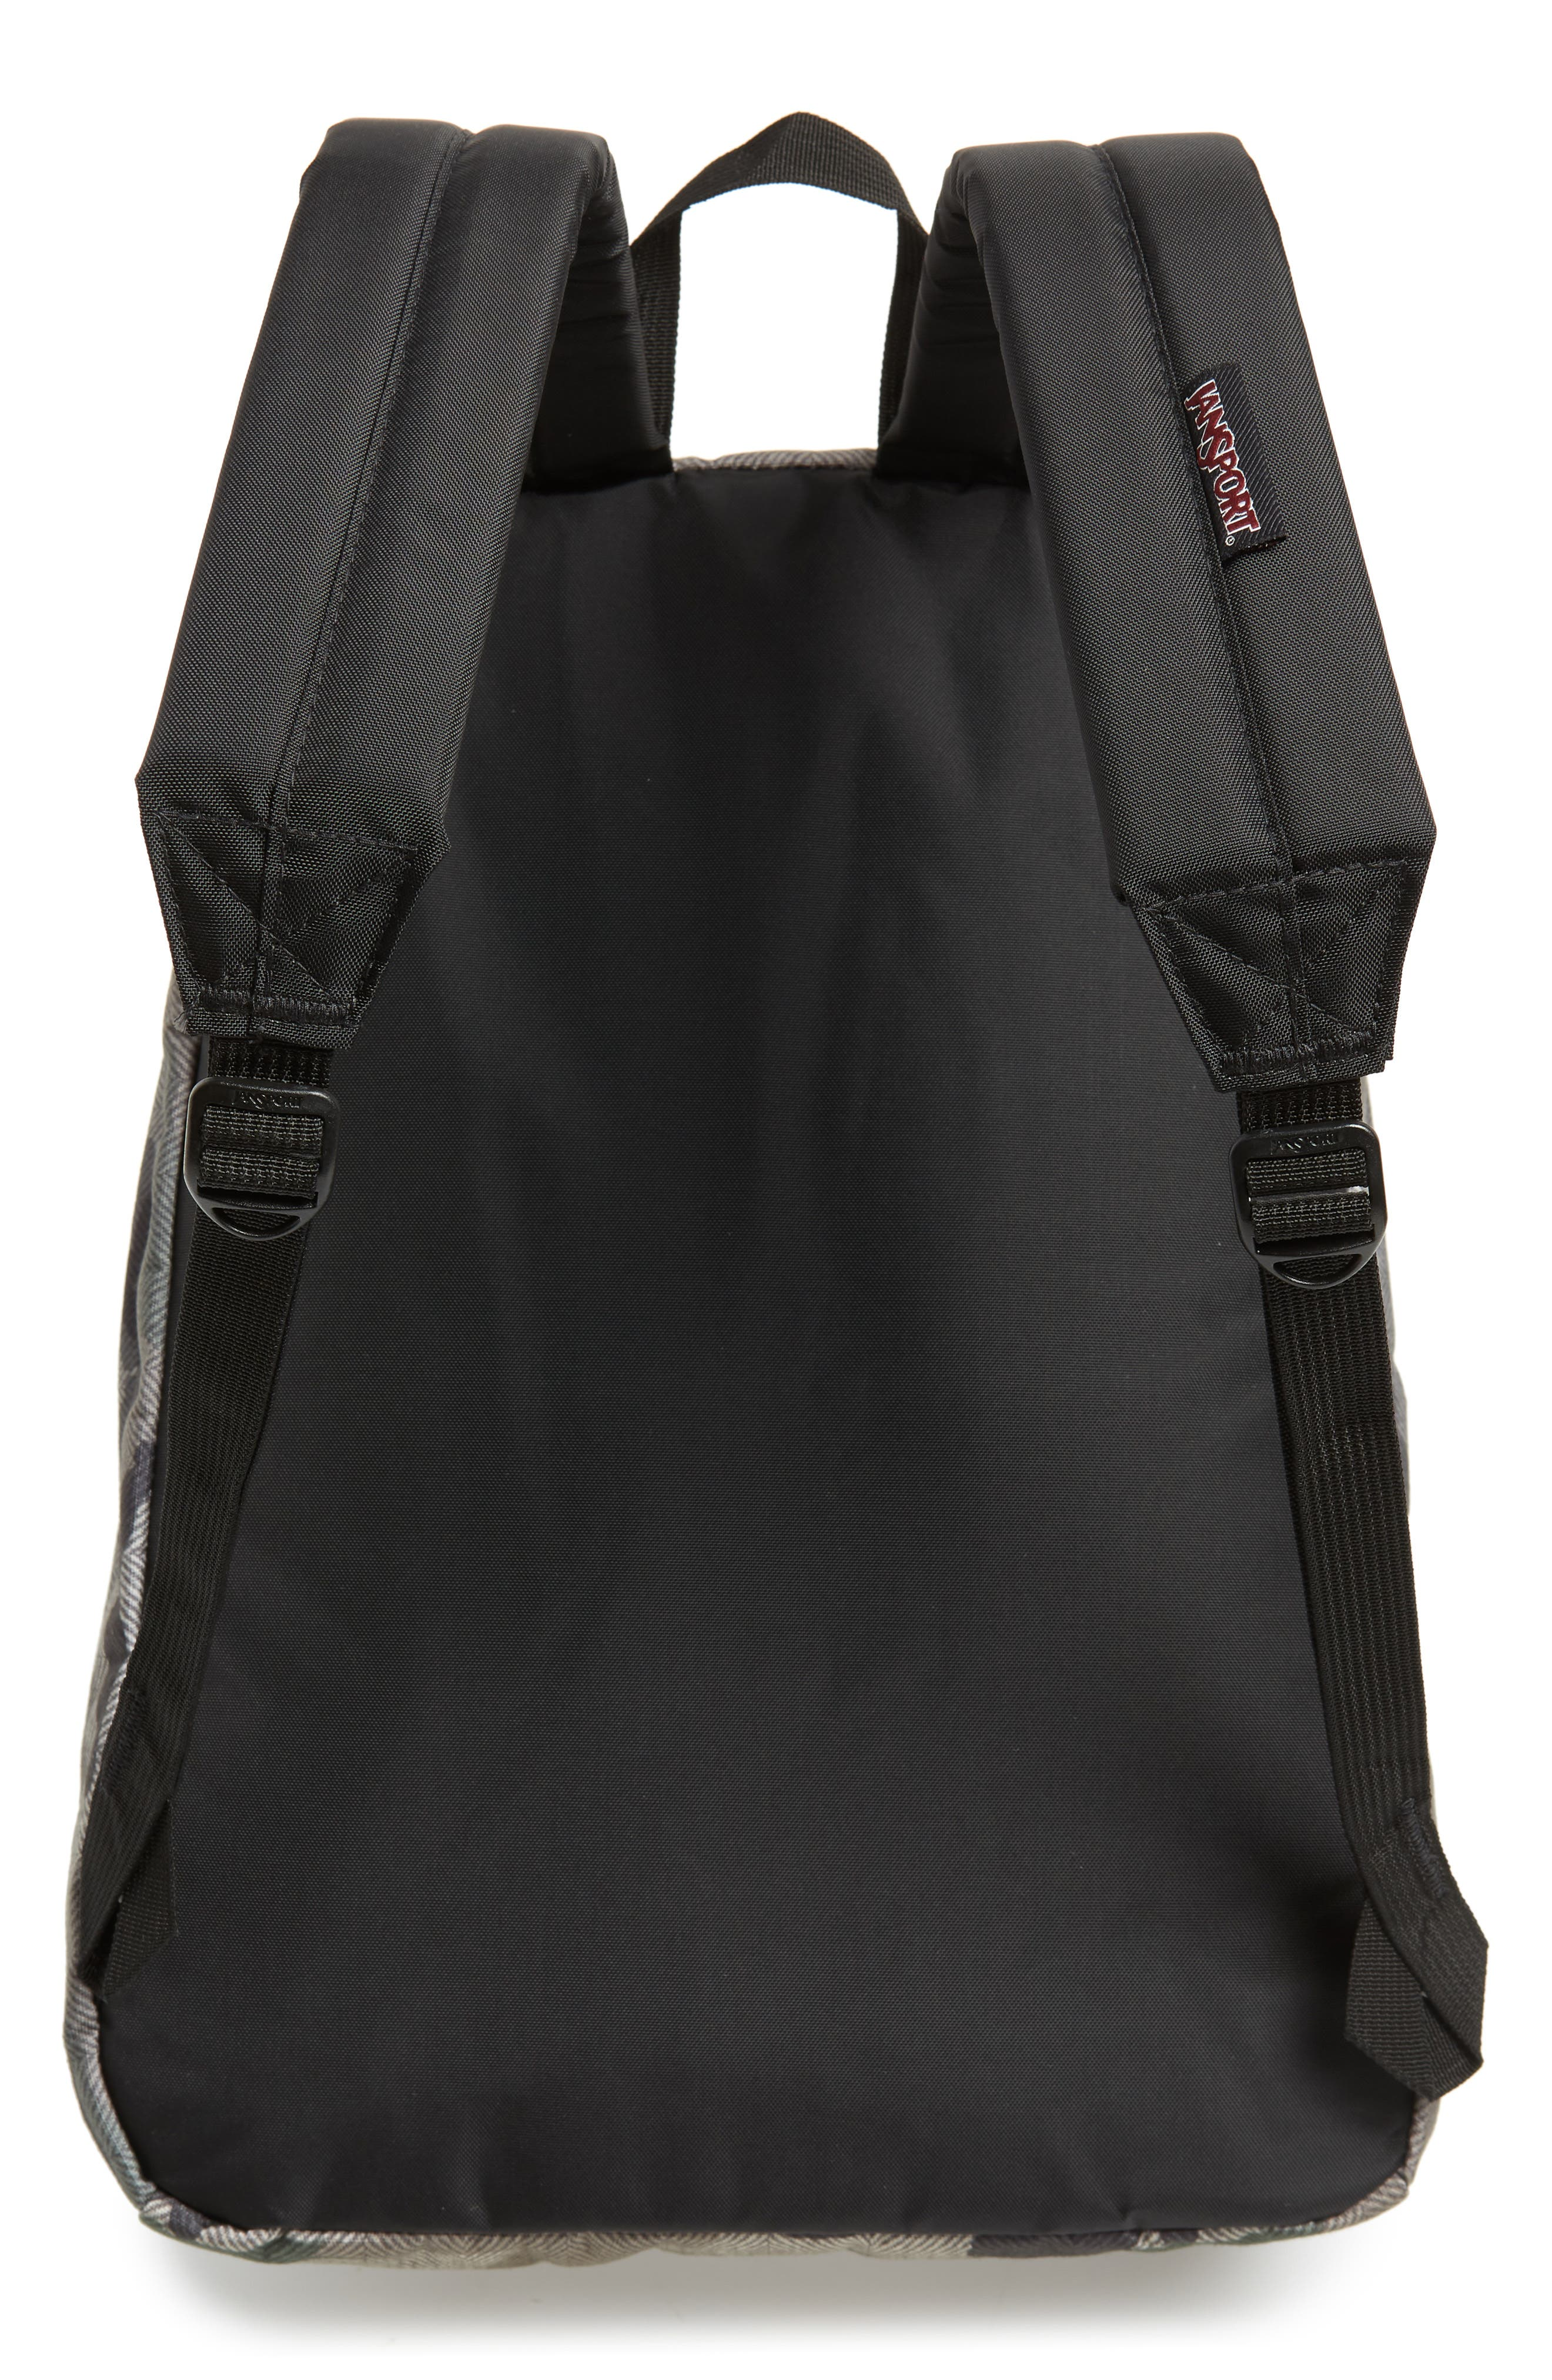 JANSPORT FREEDOM BACKPACK - IVORY, CAMO OMBRE